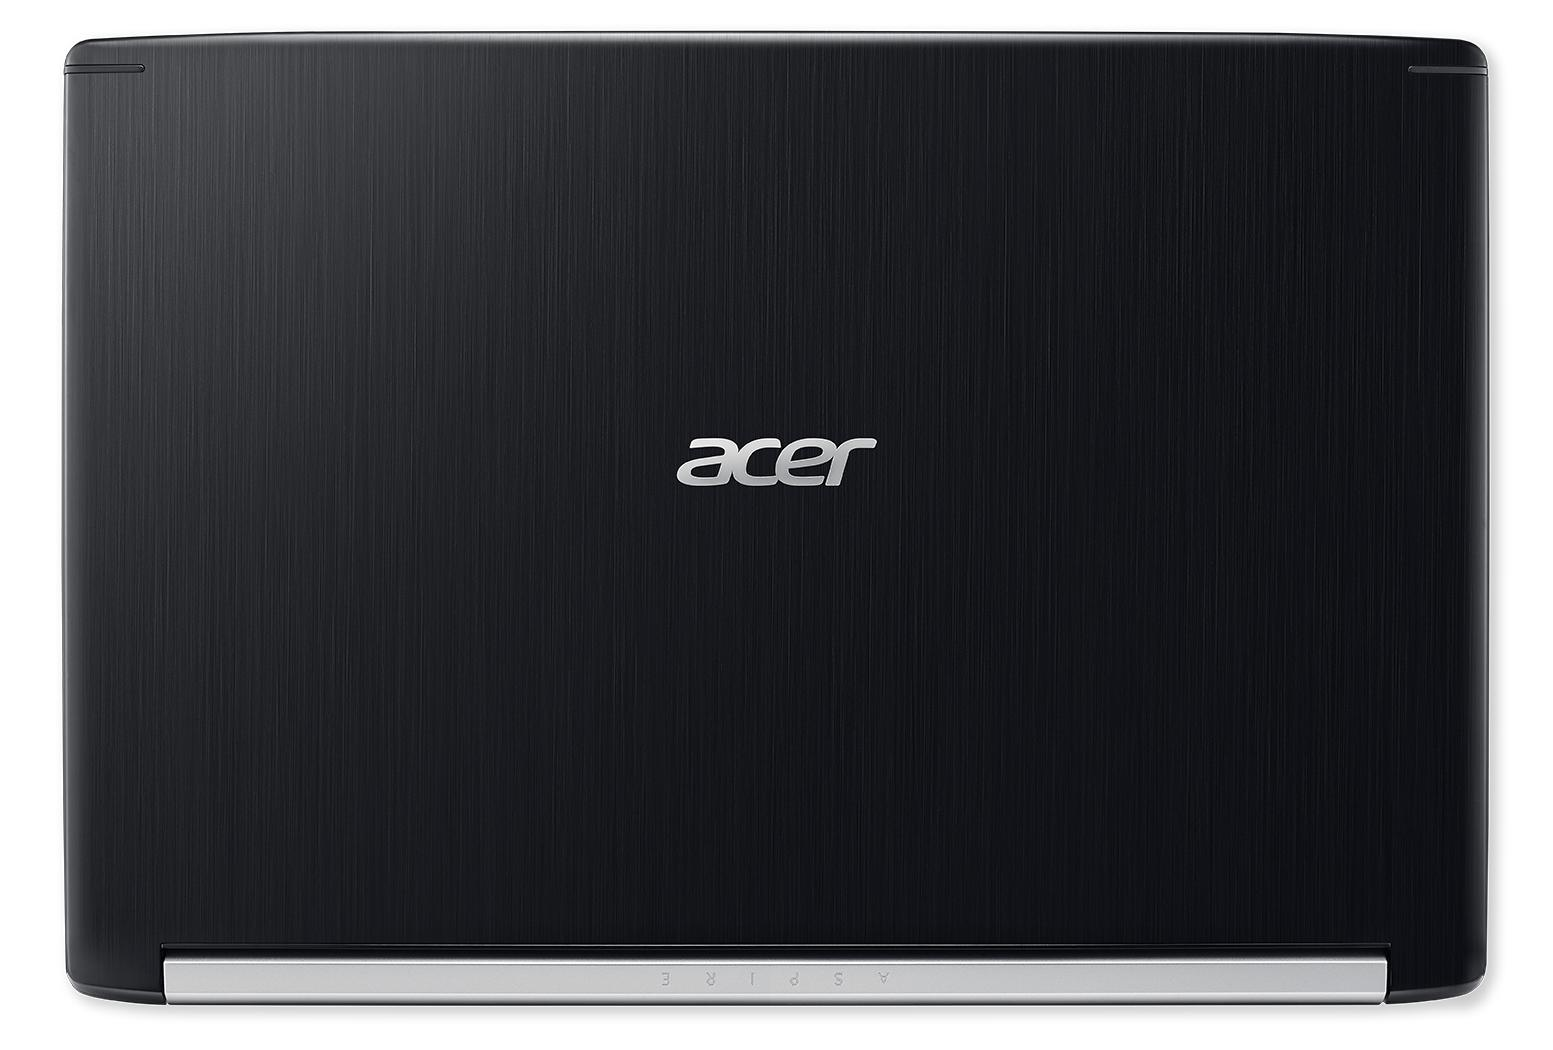 Acer Aspire 7 A717-72G-75P8 Performance Laptop - Free Gift with purchase